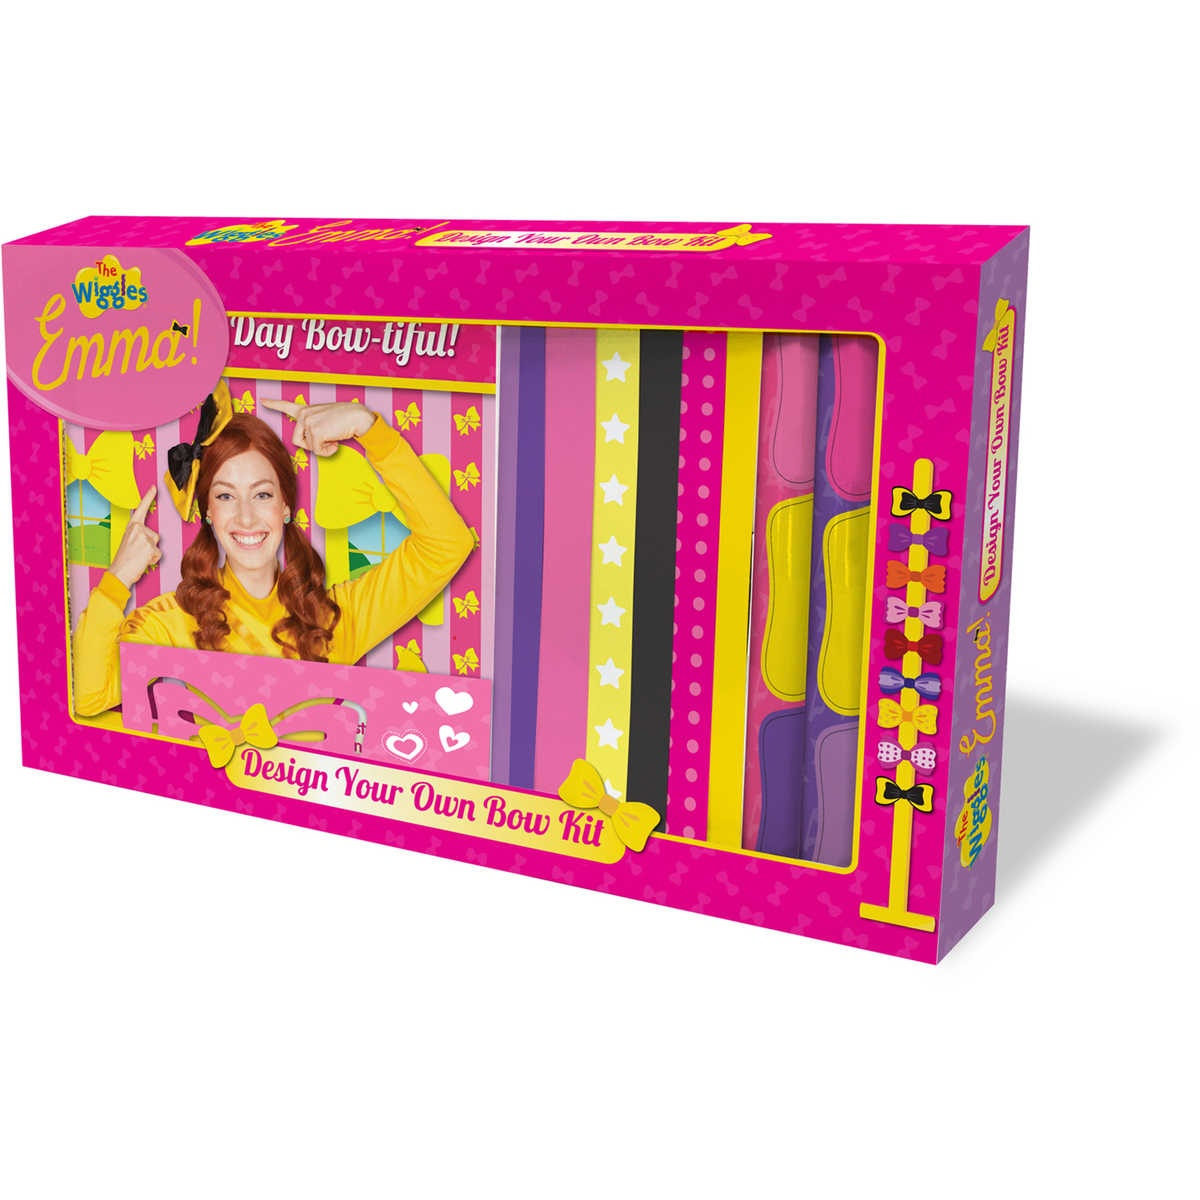 Wiggles - Emma! Design Your Own Bow Kit by The Wiggles, ISBN: 9781760403843